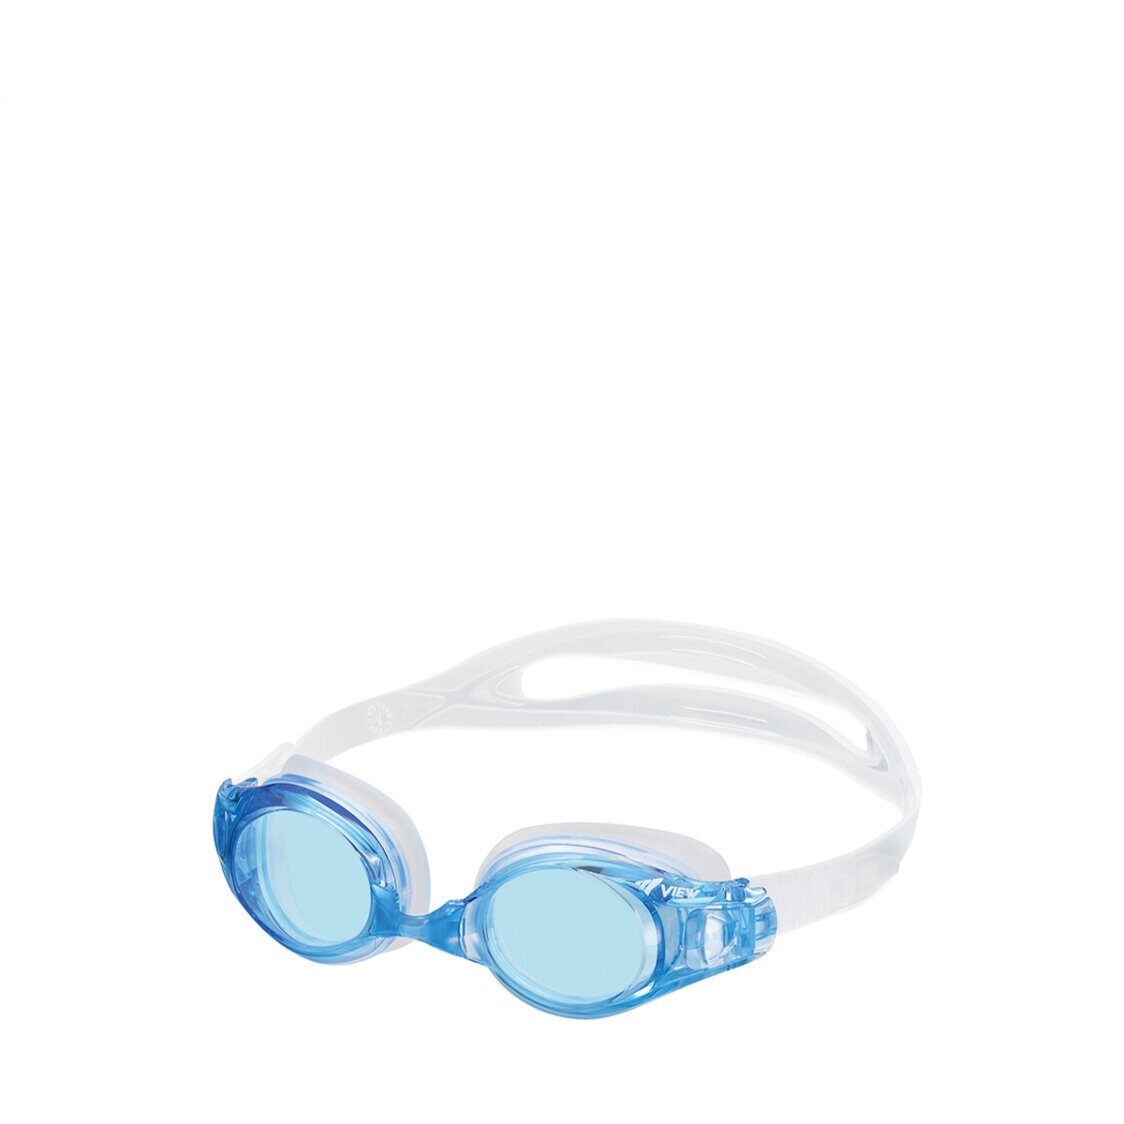 View Adult Goggle Clear Blue AAV550A